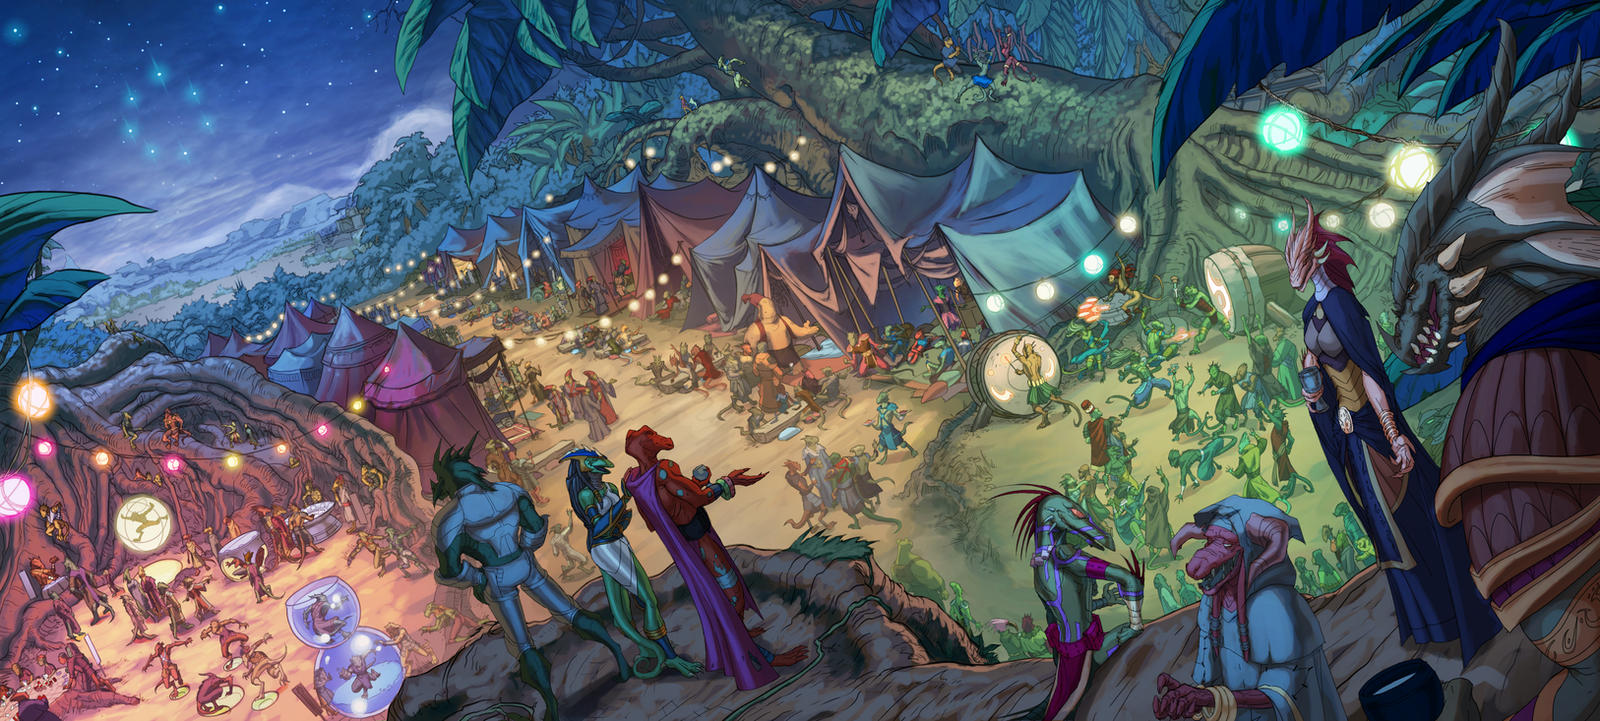 the quest for mr.fez The_mipedian_oasis_by_solblight-d41t0qv